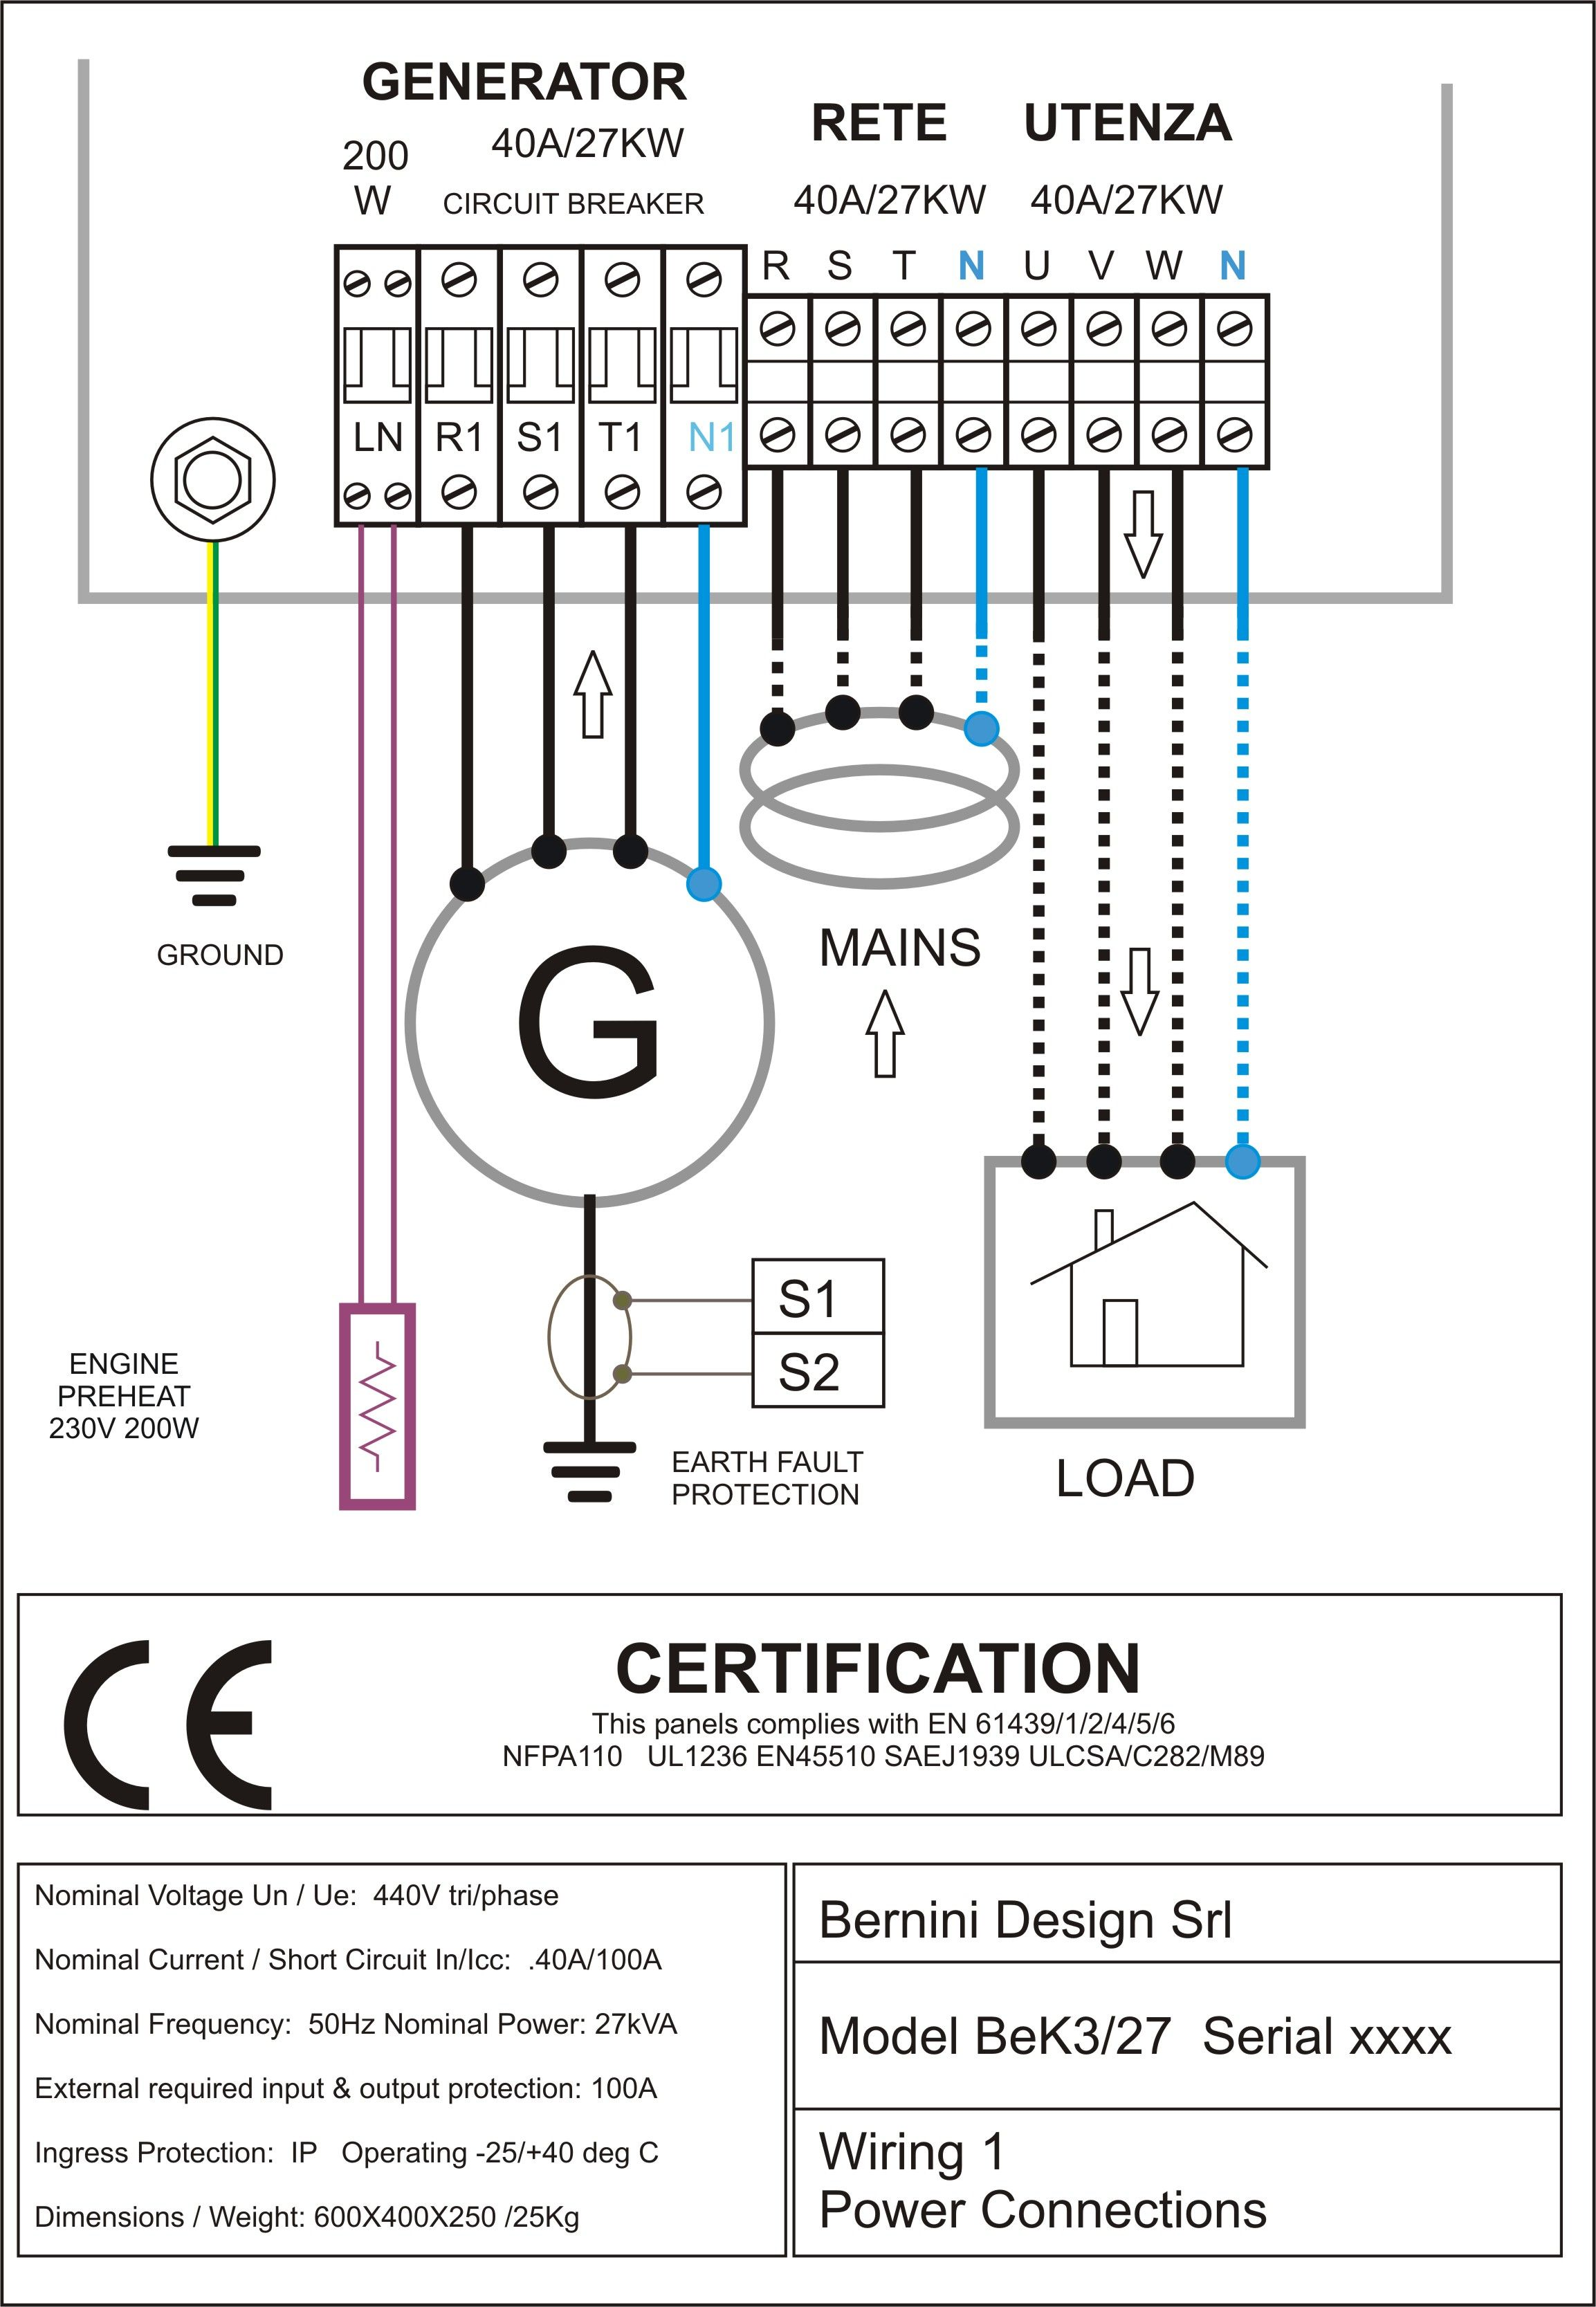 diesel generator control panel wiring diagram ac connections rh pinterest com generator control panel wiring diagram [ 2307 x 3335 Pixel ]